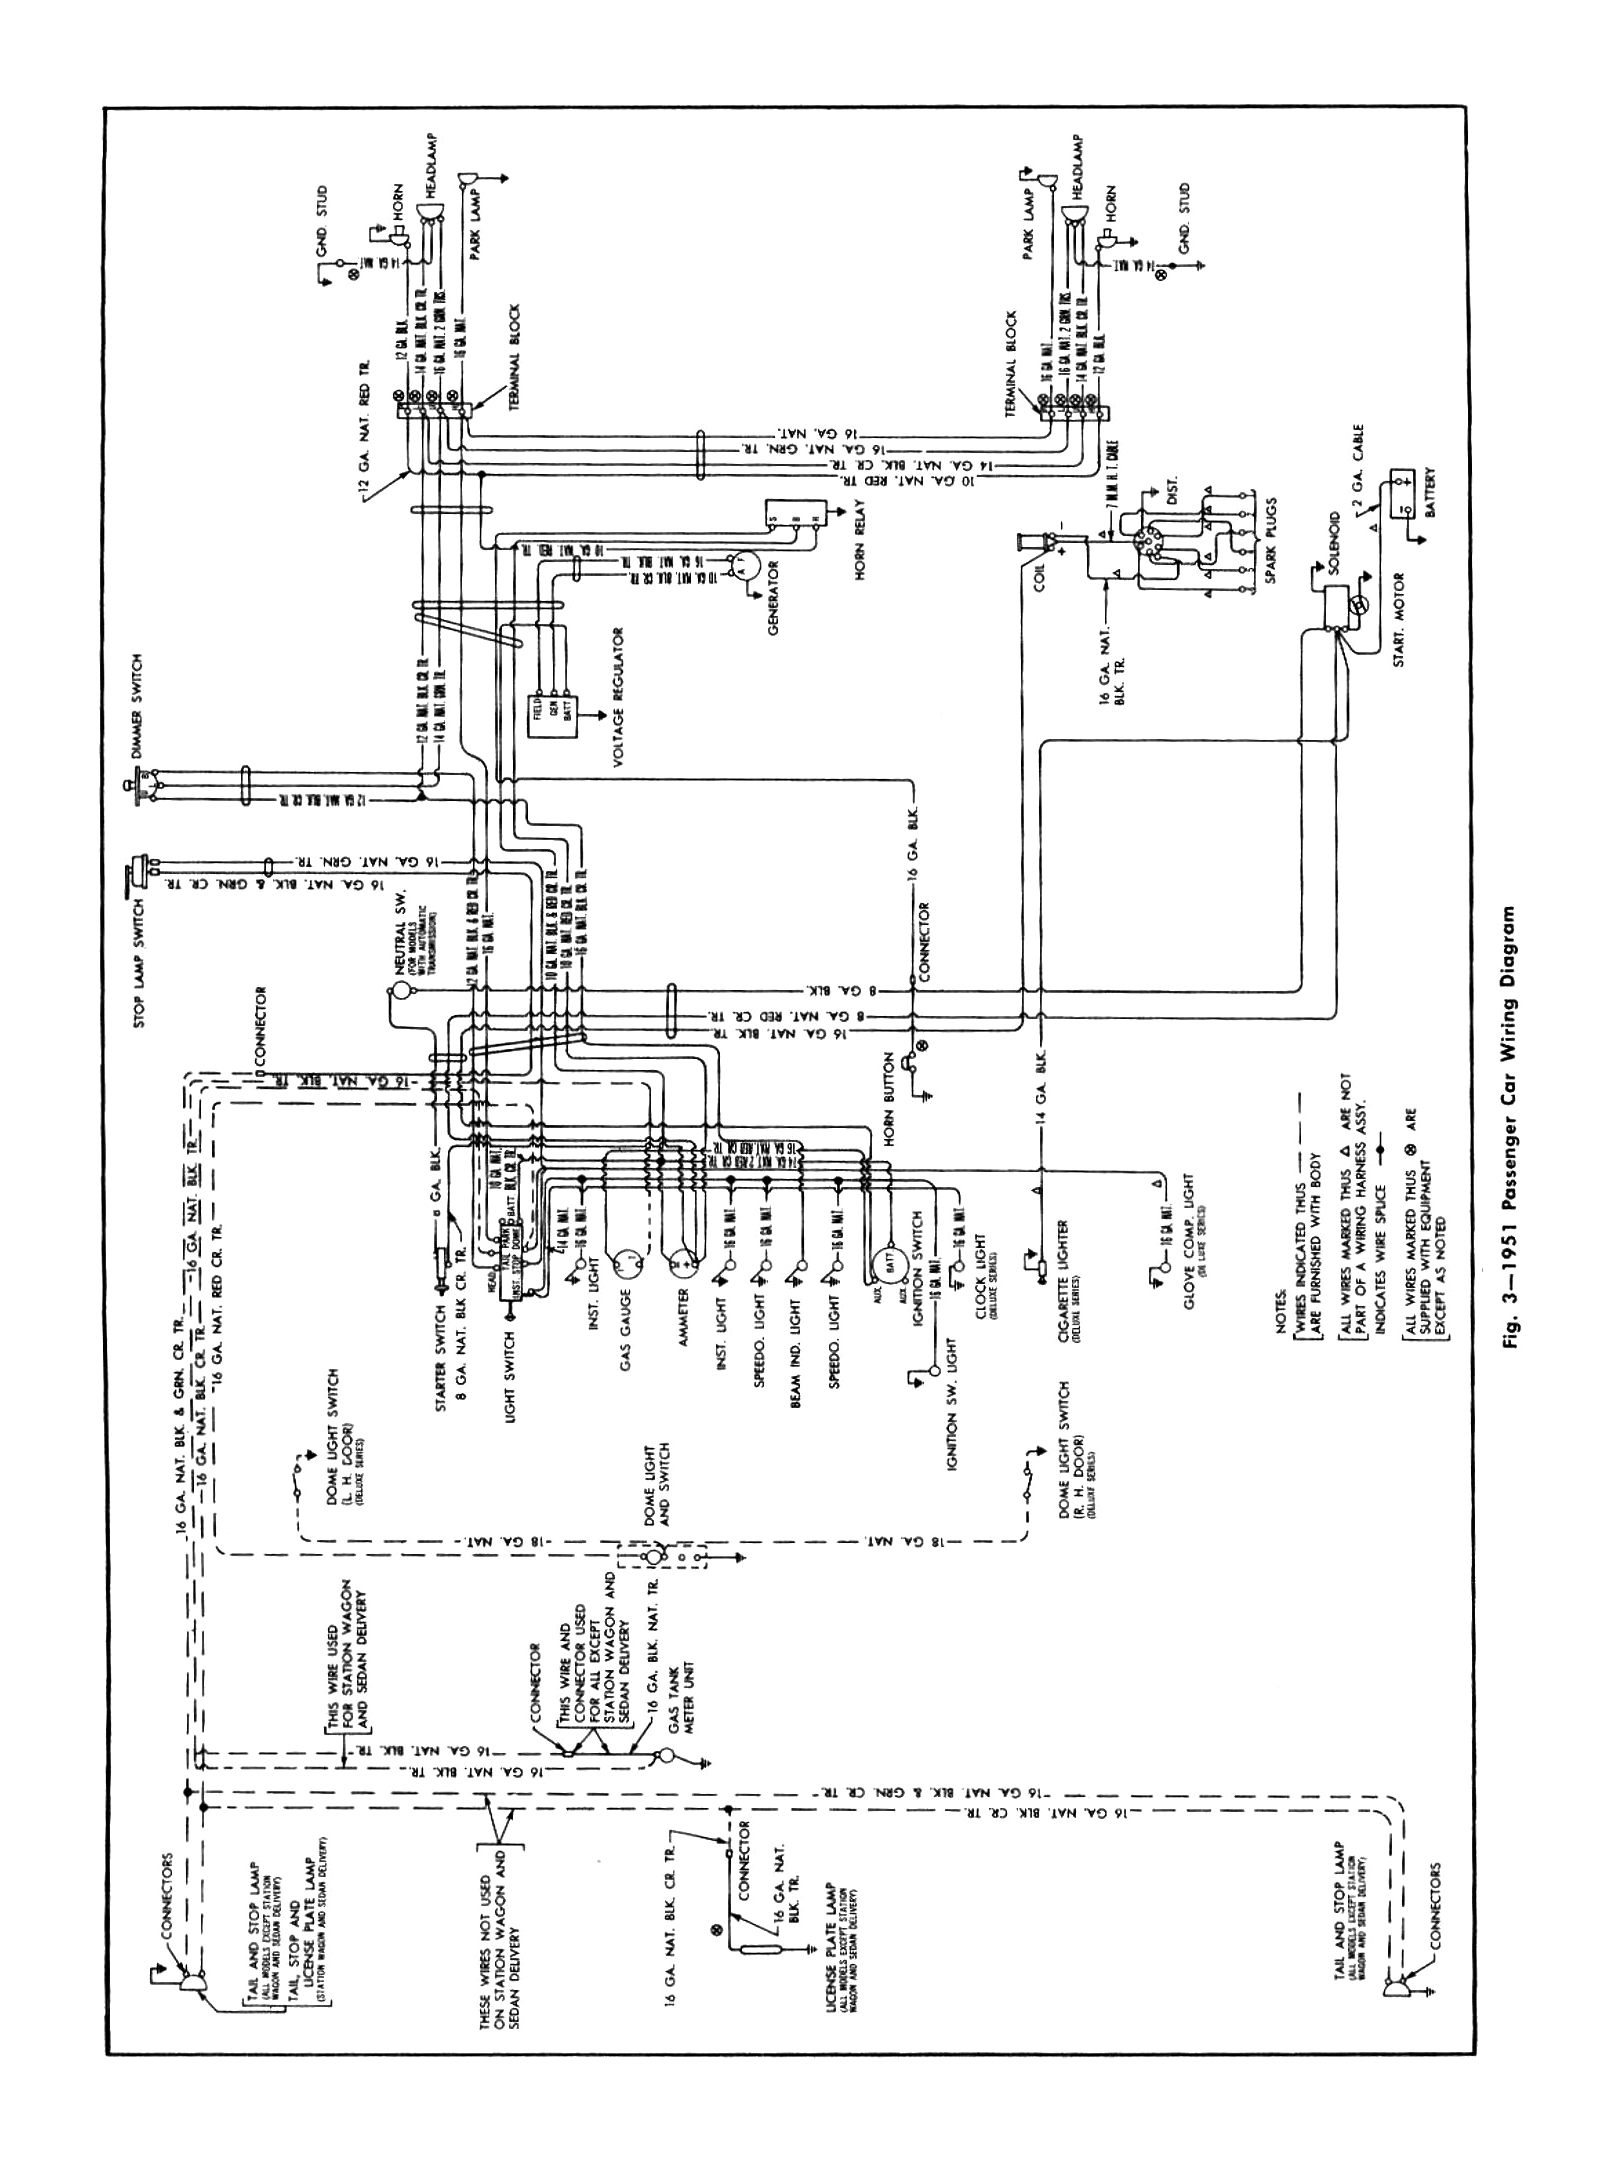 51car wiring loom diagram 1 2wire loom \u2022 wiring diagrams j squared co ez wiring mini 20 wiring diagram download at couponss.co